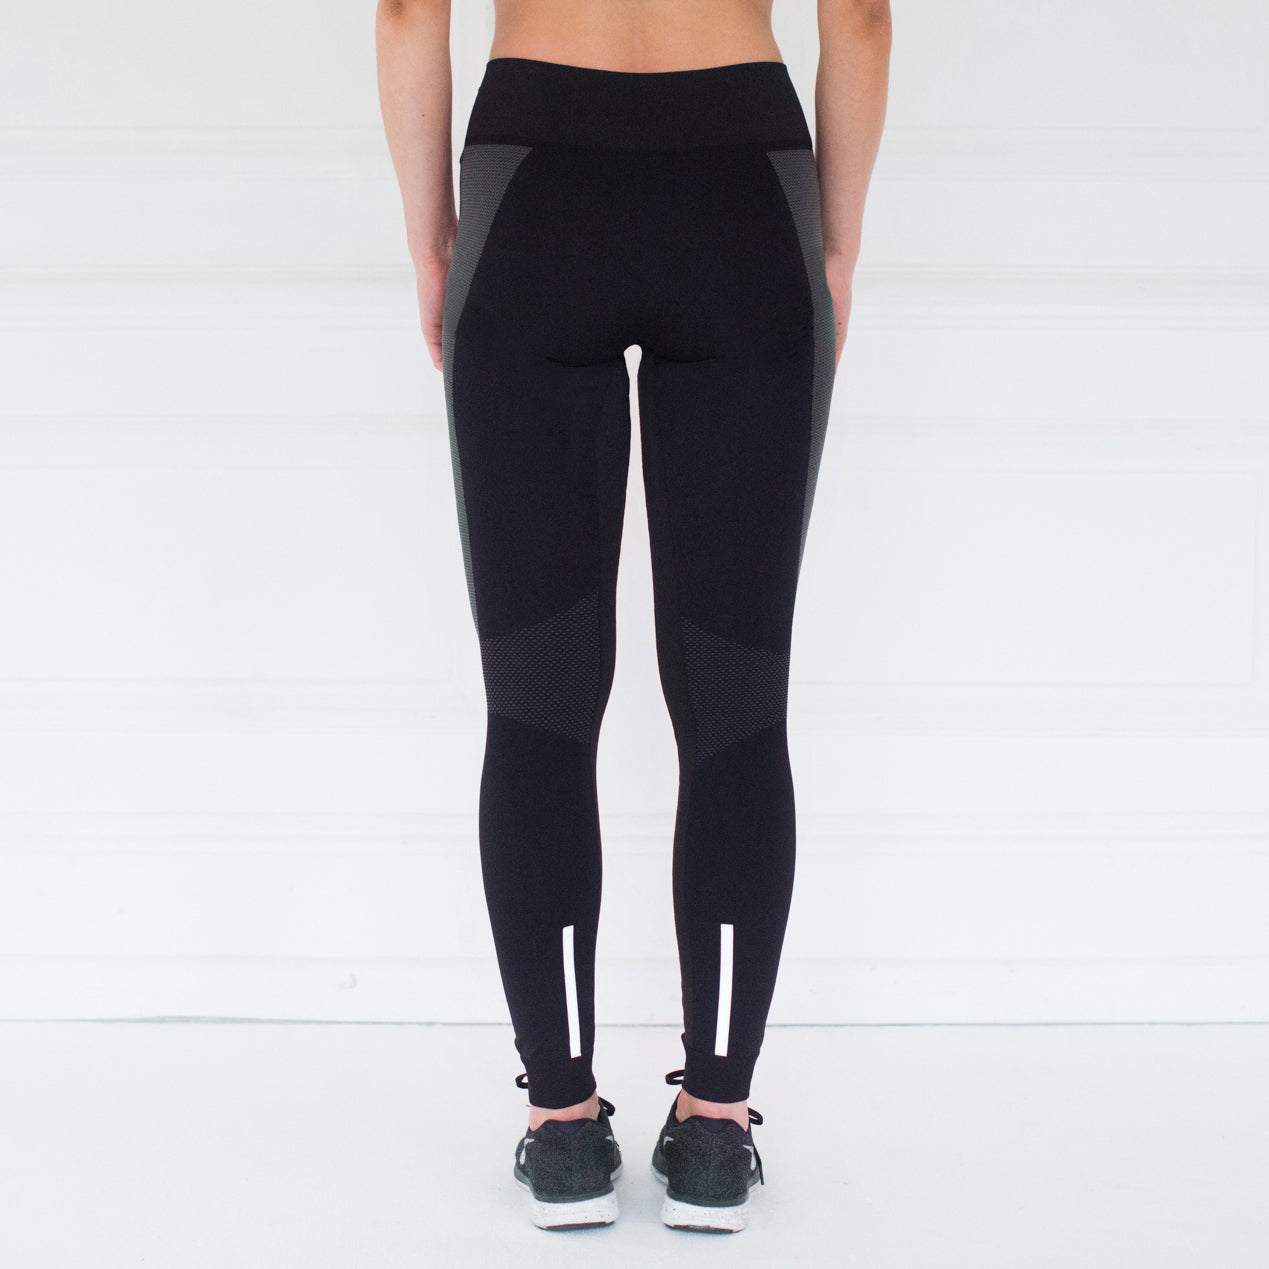 Seamless Full Length Sensation Leggings  – Black / Grey